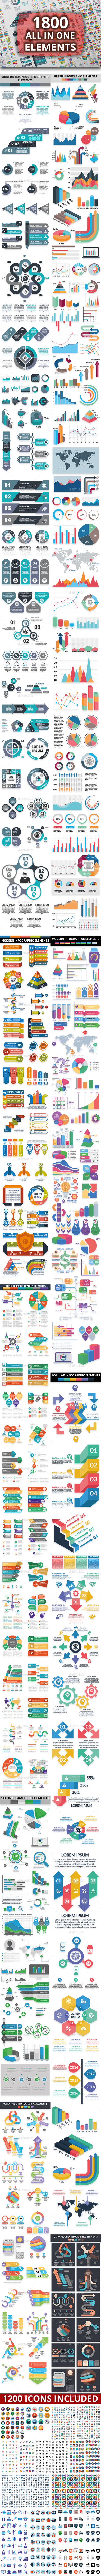 GraphicRiver All in One Bundle Infographic Elements 21189145